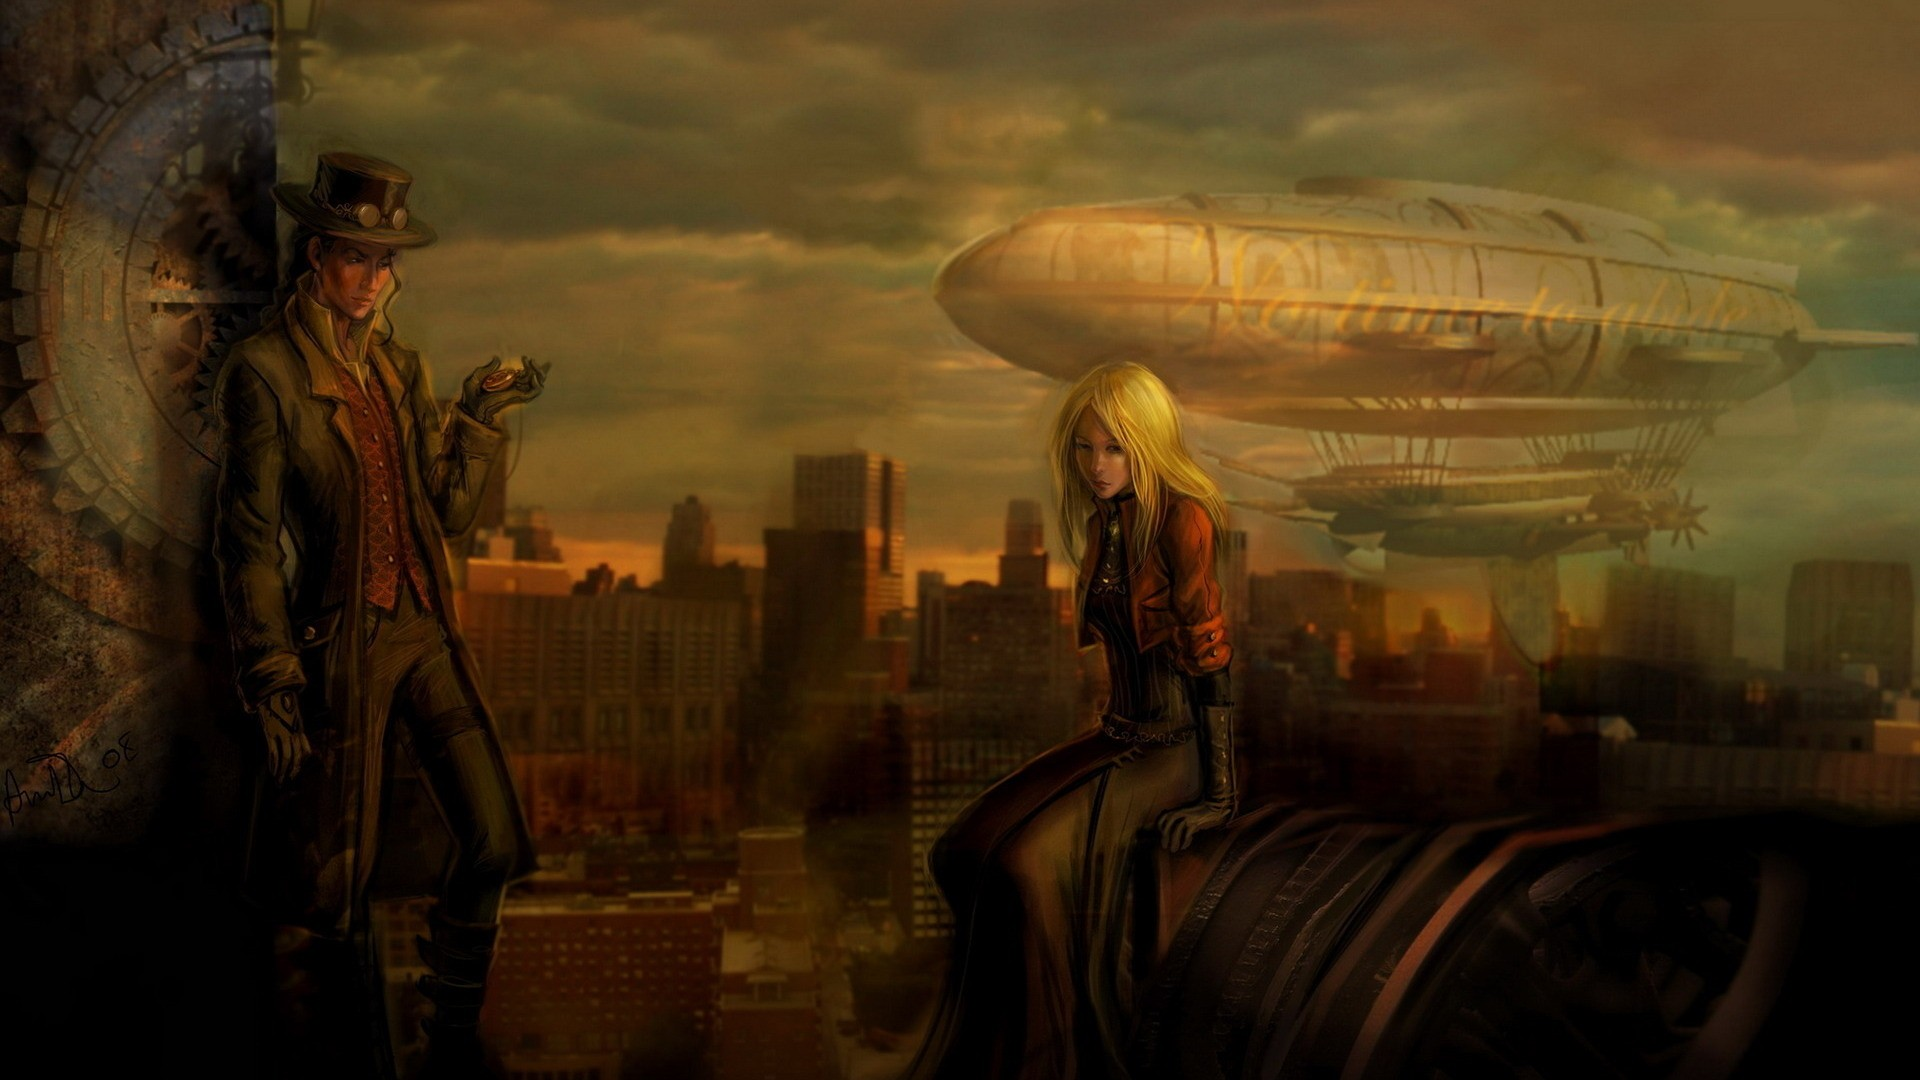 cityscapes steampunk vehicles airship